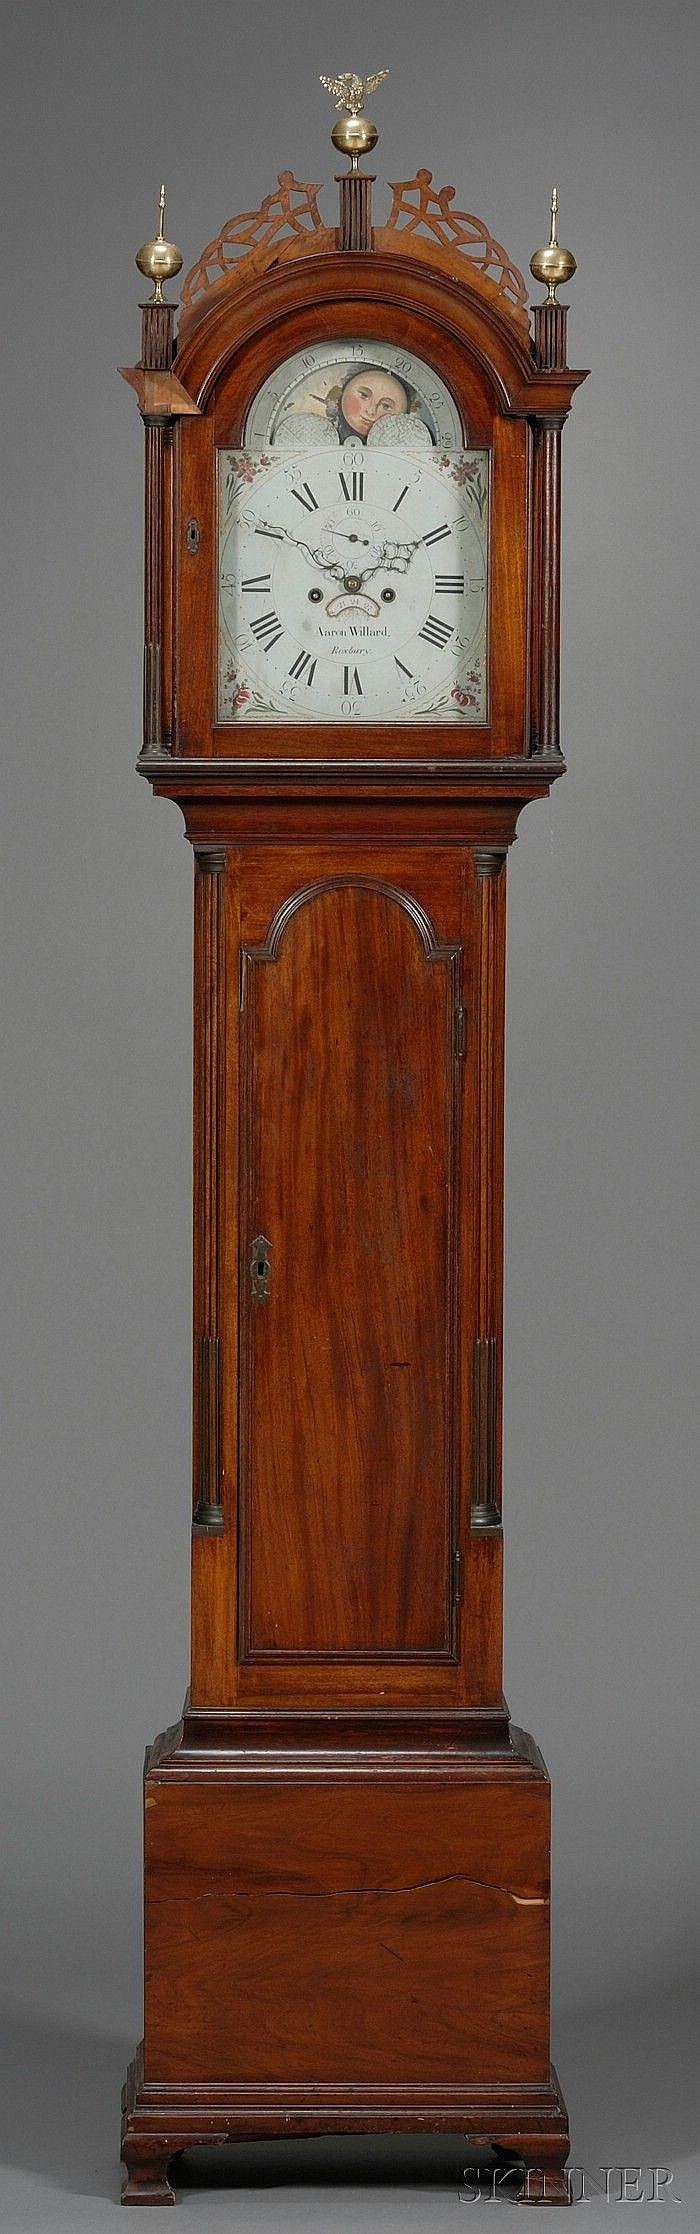 Federal Carved Mahogany Tall Case Clock, Aaron Willard, Roxbury, Massachusetts, c. 1790, the 12 in. painted iron dial with moon's ag..